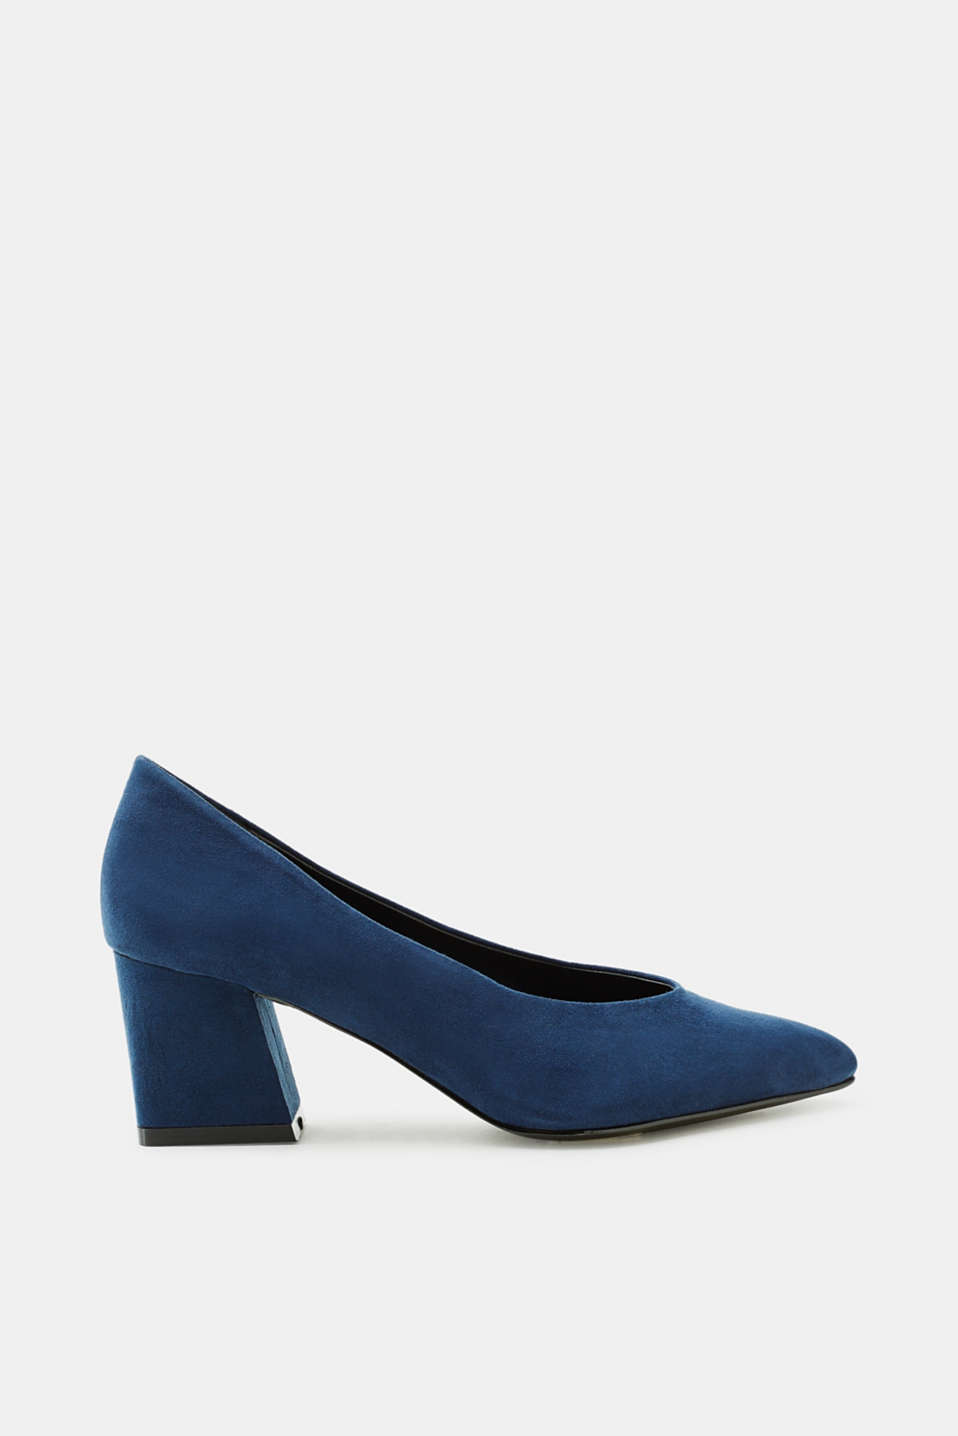 These mid-height suede court shoes with a block heel and a pointed toe look fantastic with cropped trousers.